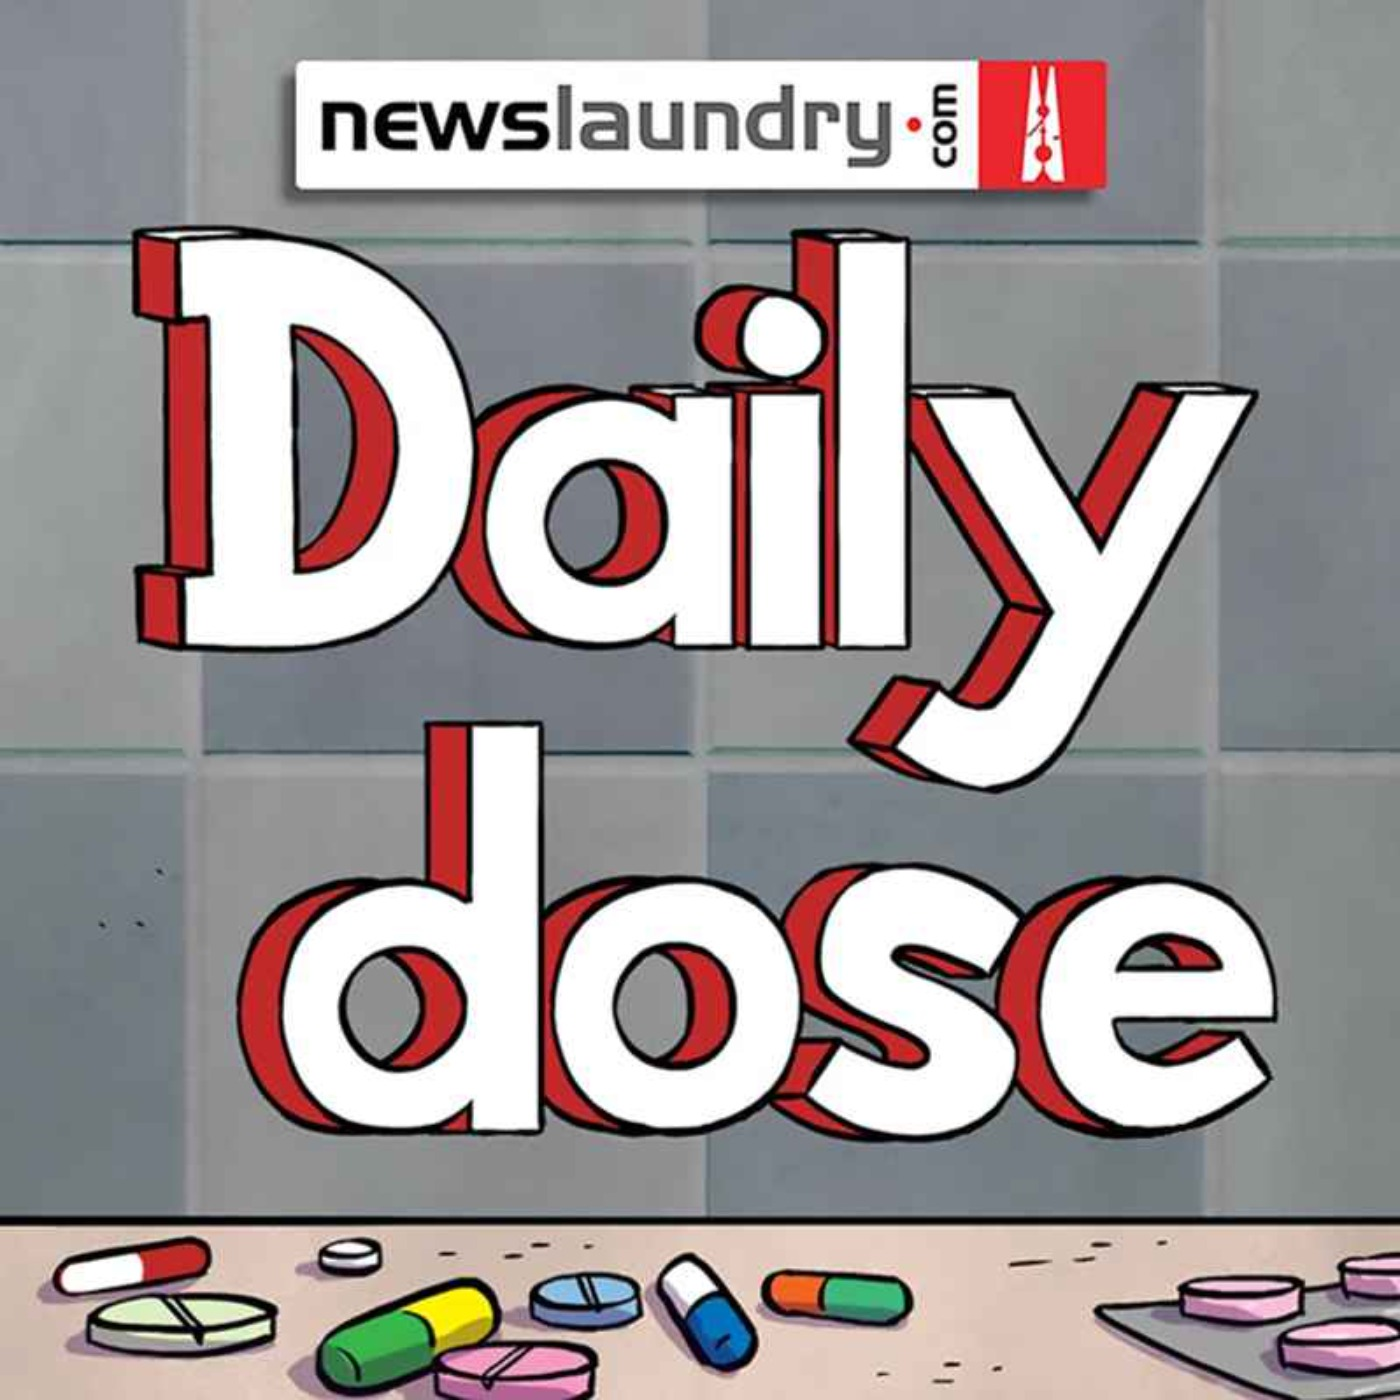 Daily Dose Ep 632: Uttarakhand disaster, farmer protests, and Trump's impeachment trial